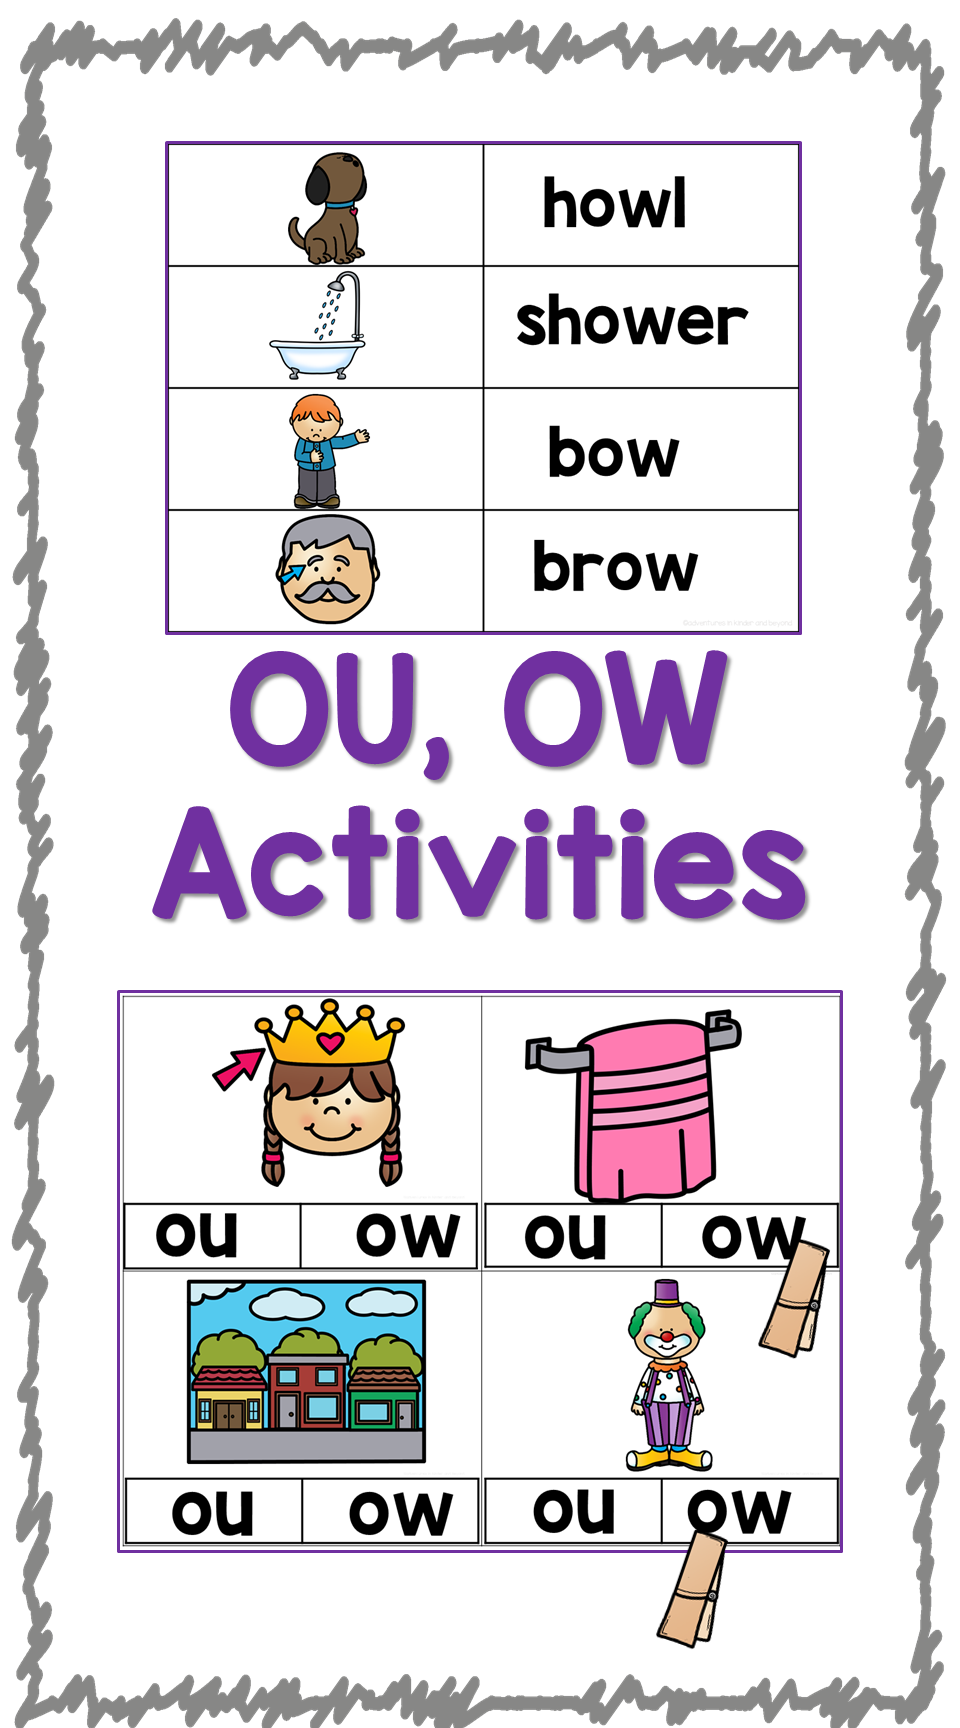 OU OW- Diphthong Activities and Printables   Pocket charts ...